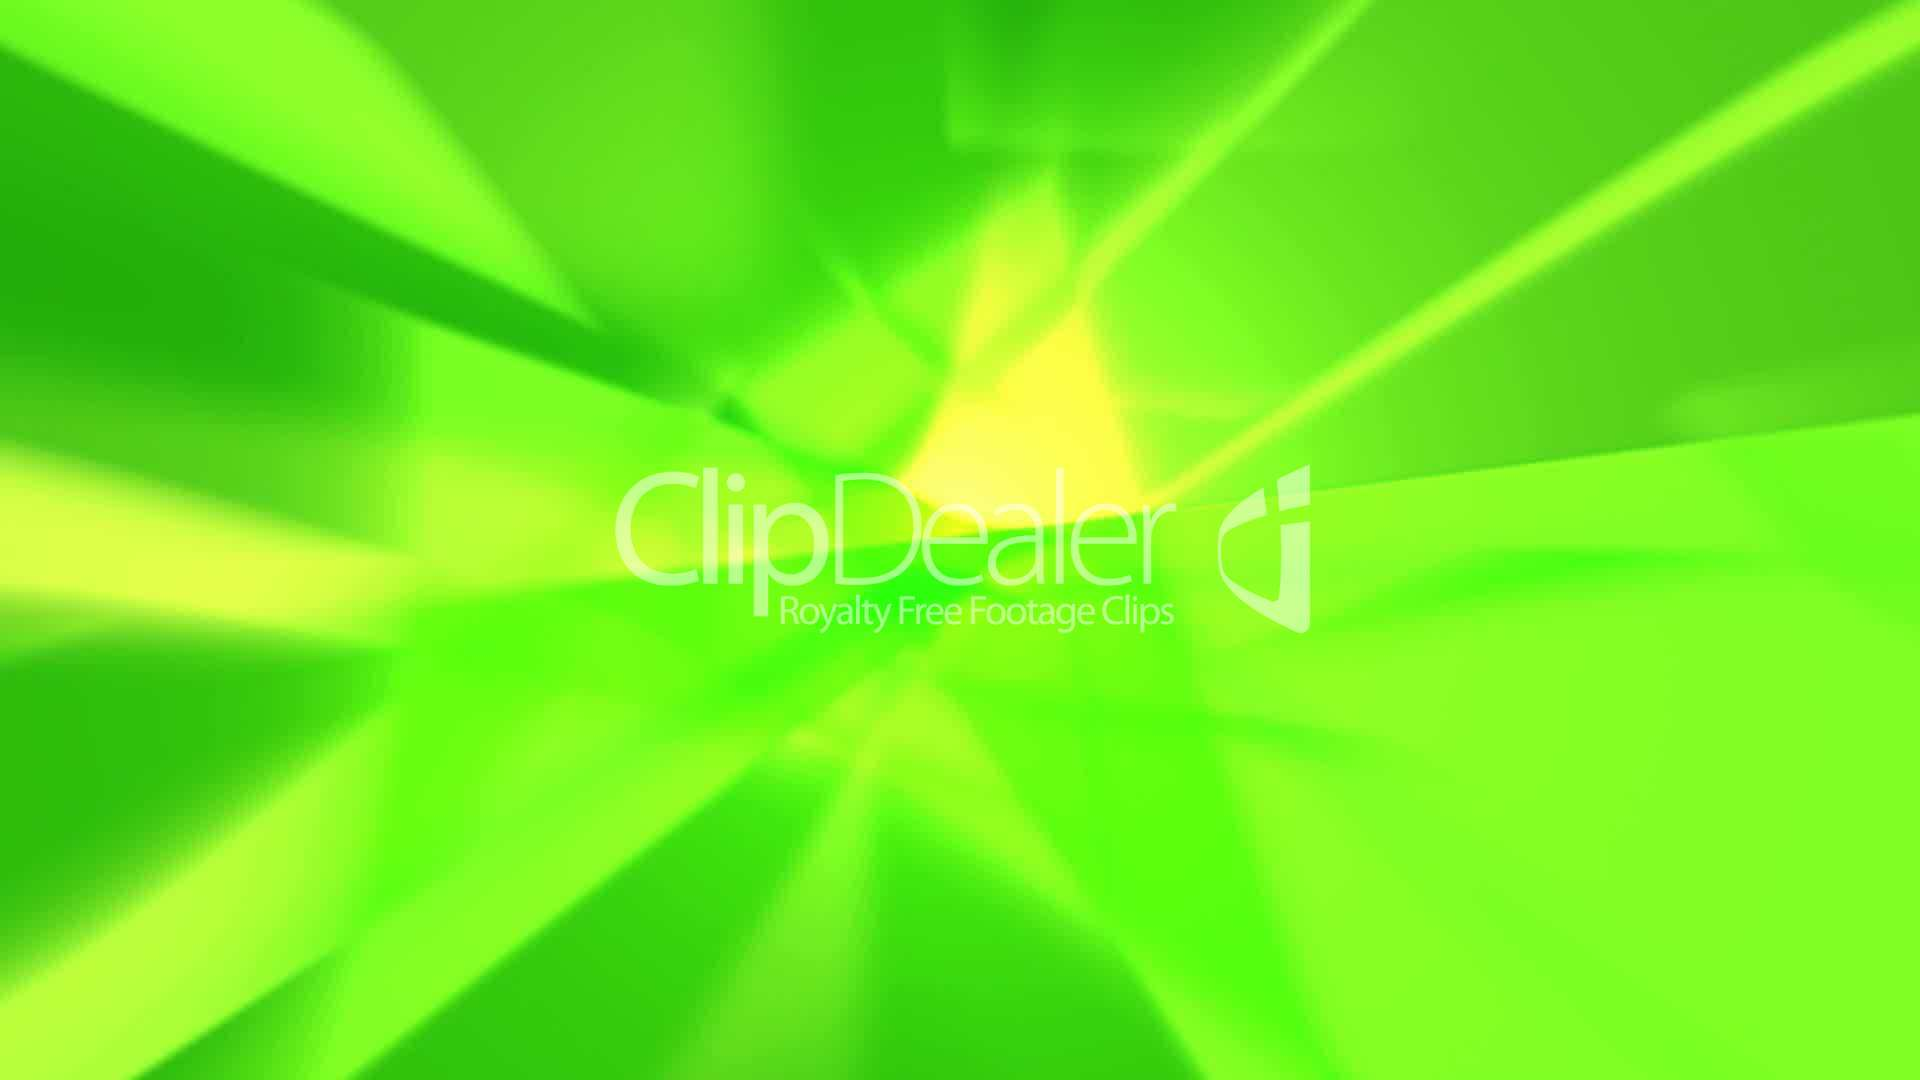 Hd Christbaumschmuck Royalty Free Video And Stock Footage Green Abstract Background Loop Hd 25 Fps Royalty Free